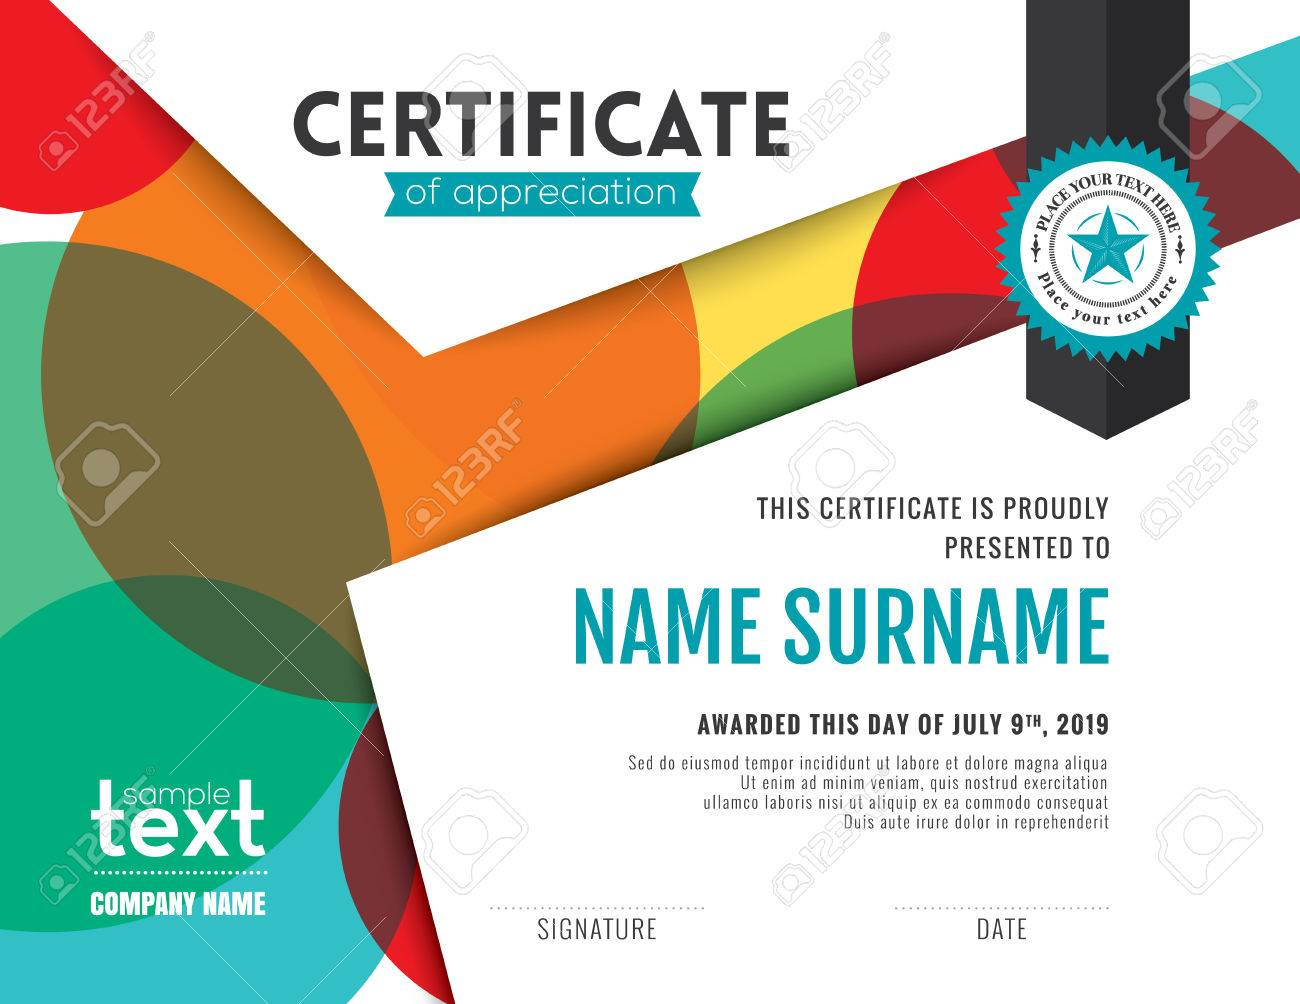 Modern certificate of appreciation template with colorful circles modern certificate of appreciation template with colorful circles background design stock vector 59496994 yadclub Image collections